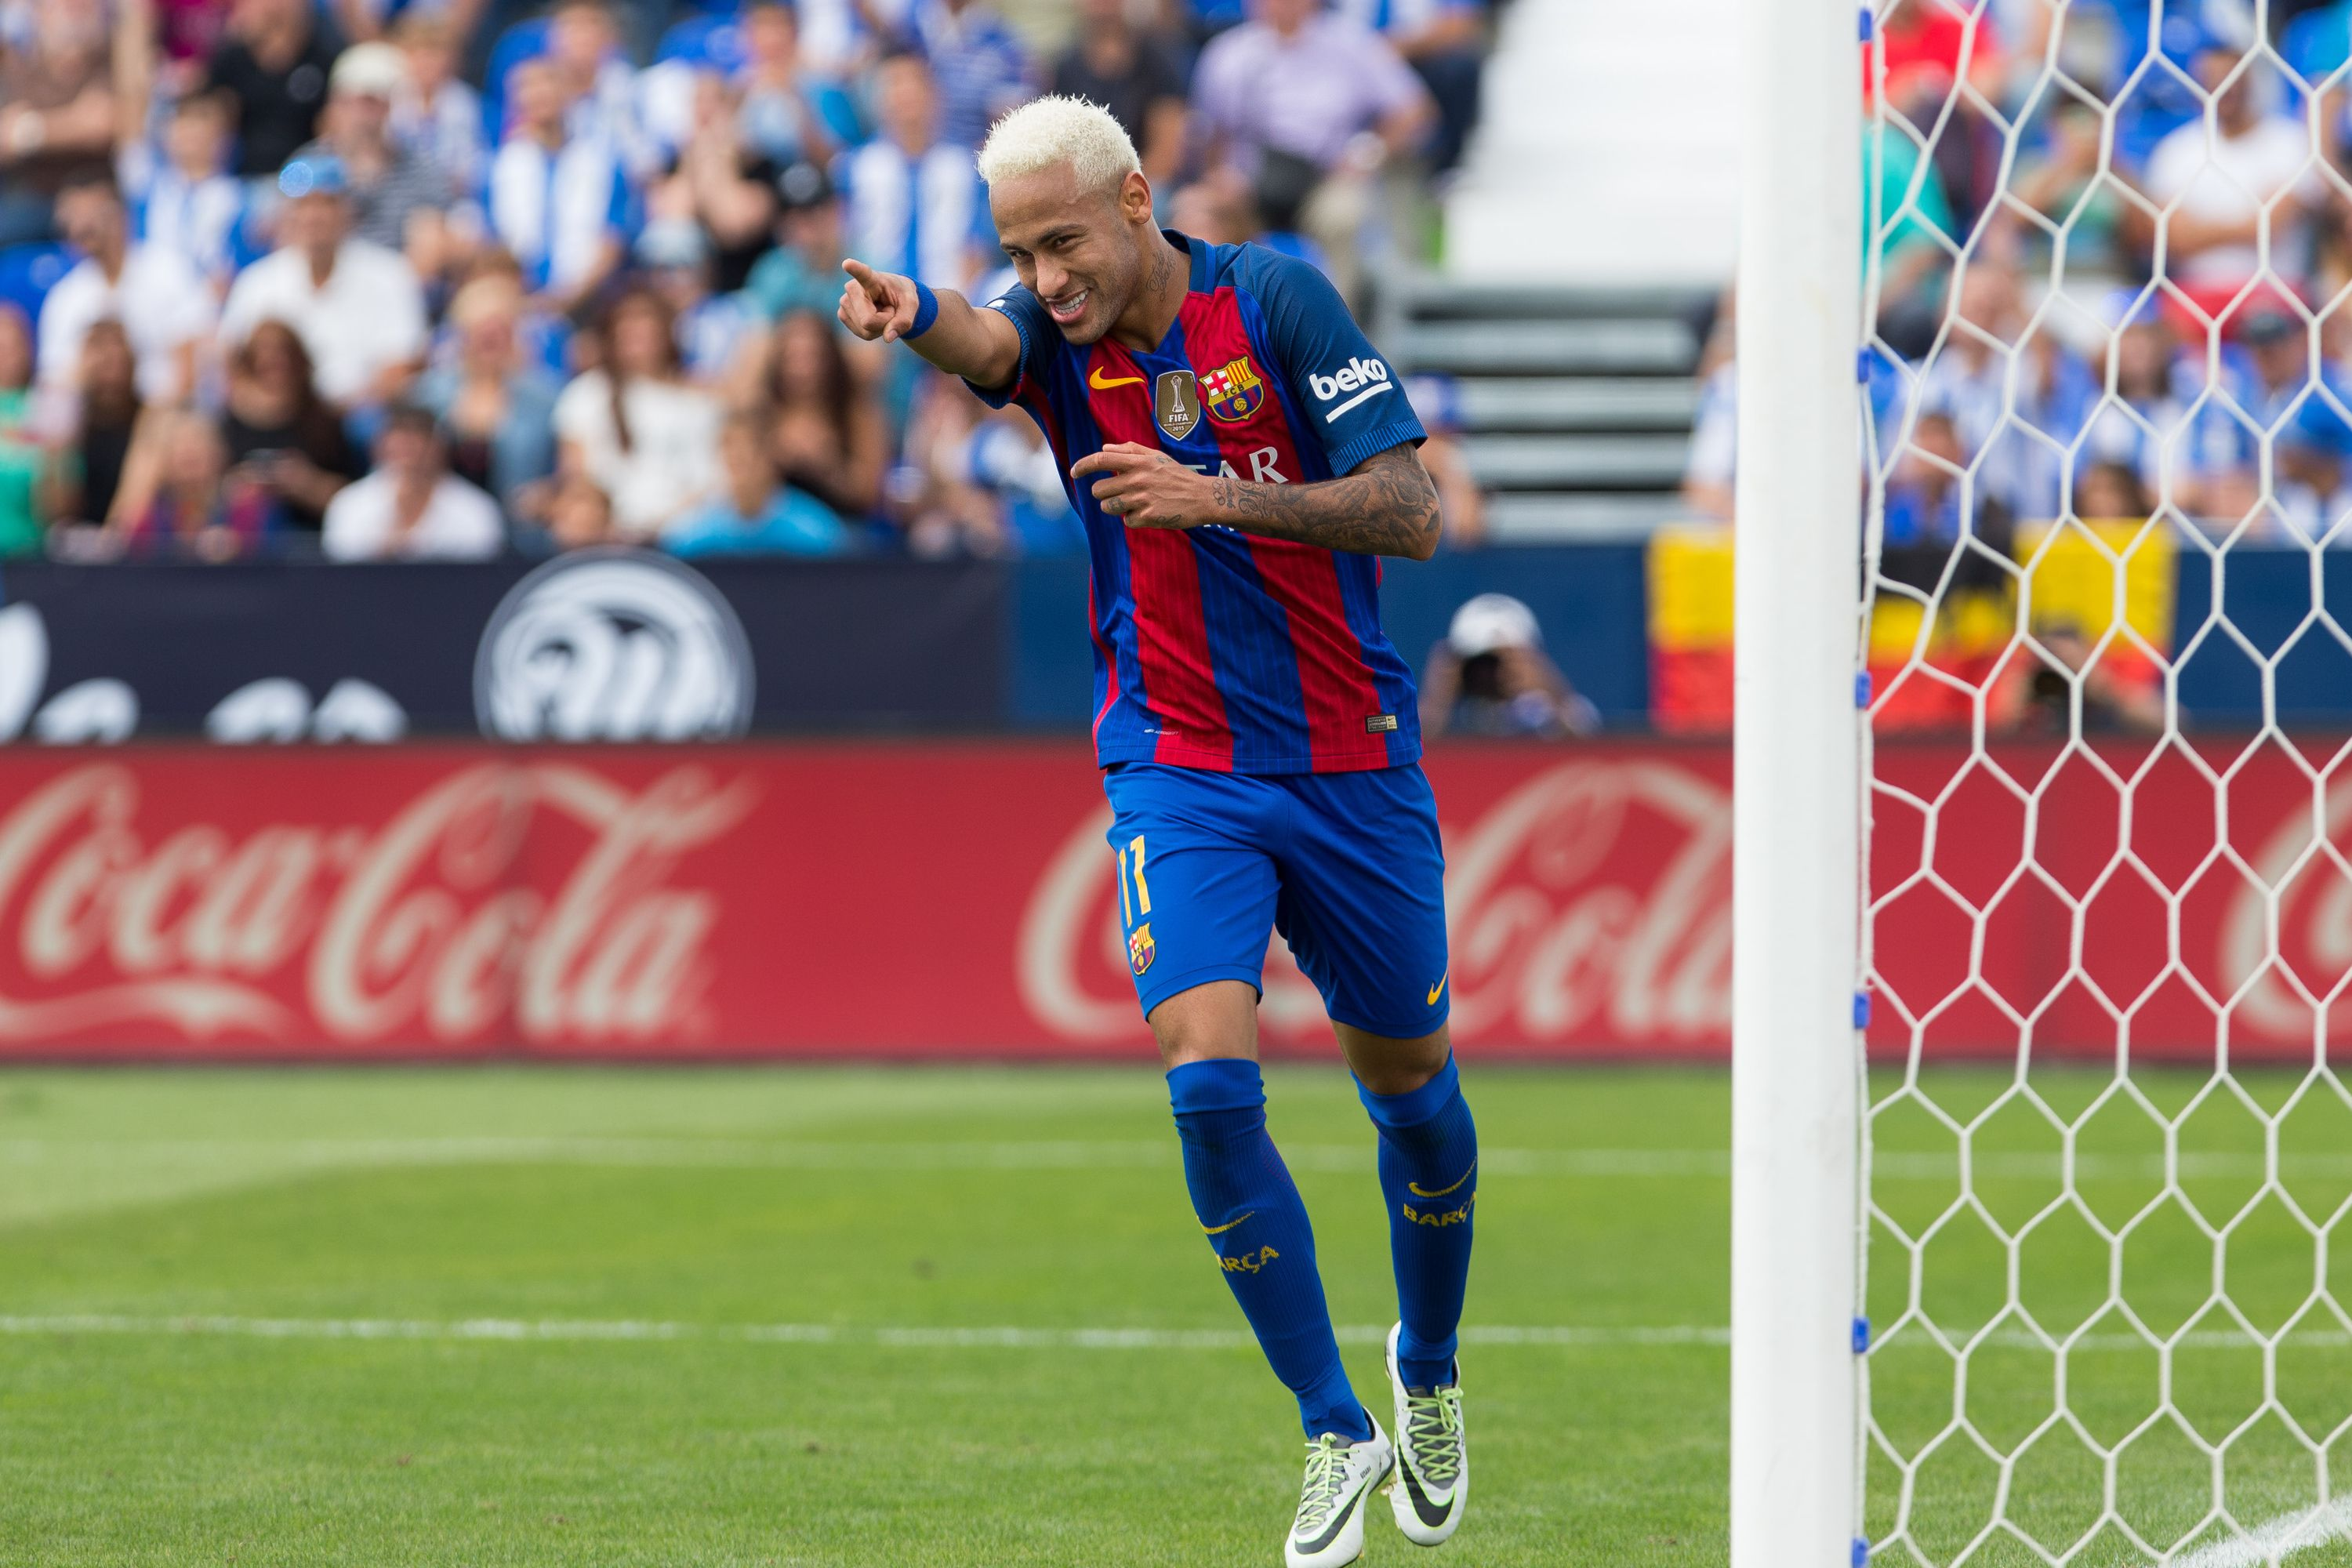 Football - Etranger - Barcelone-La Corogne en direct